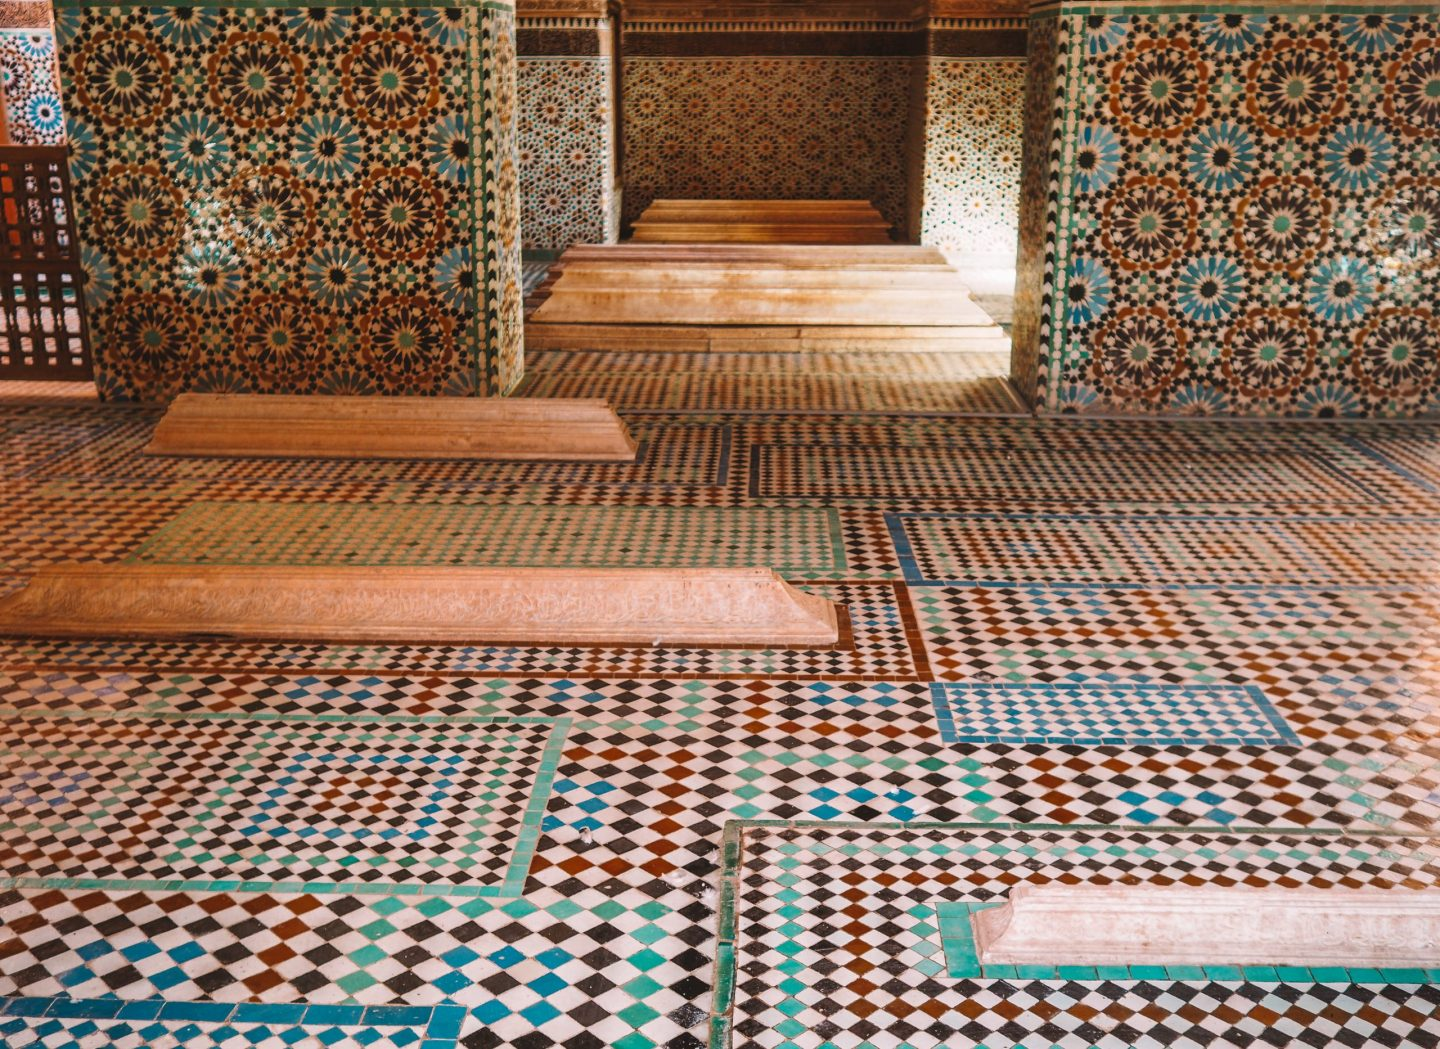 The Colours of Marrakesh - Part I